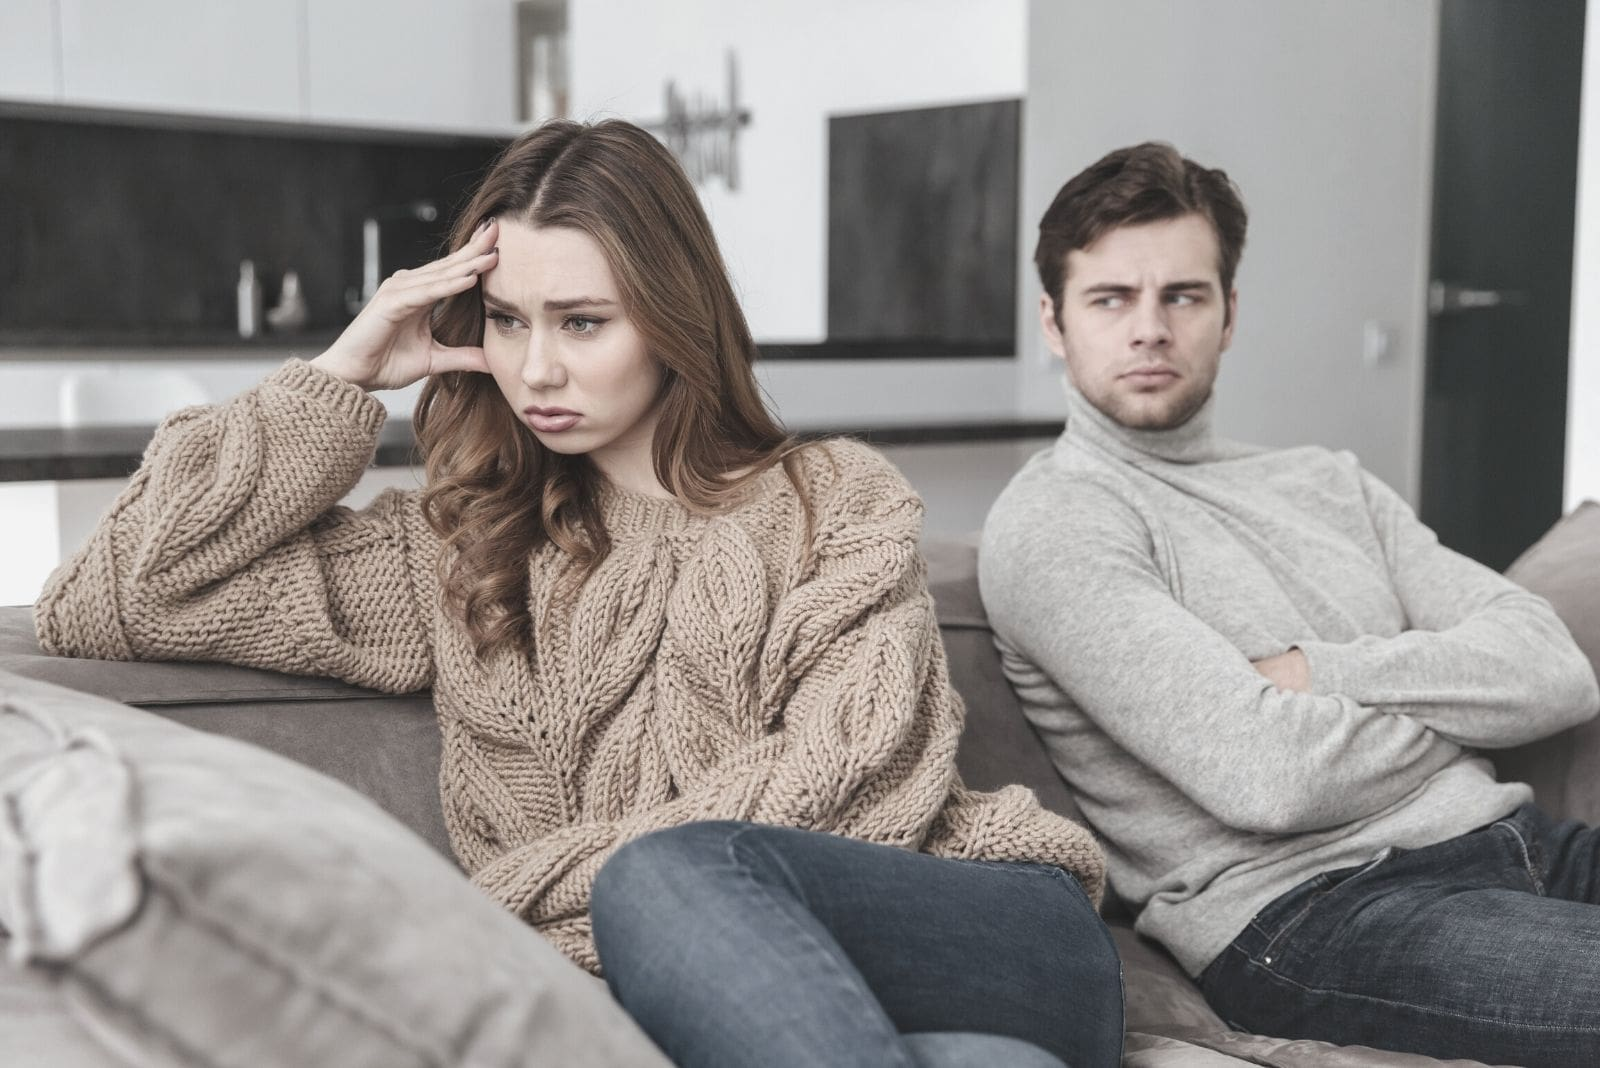 displeased loving couple sitting and not talking to each other